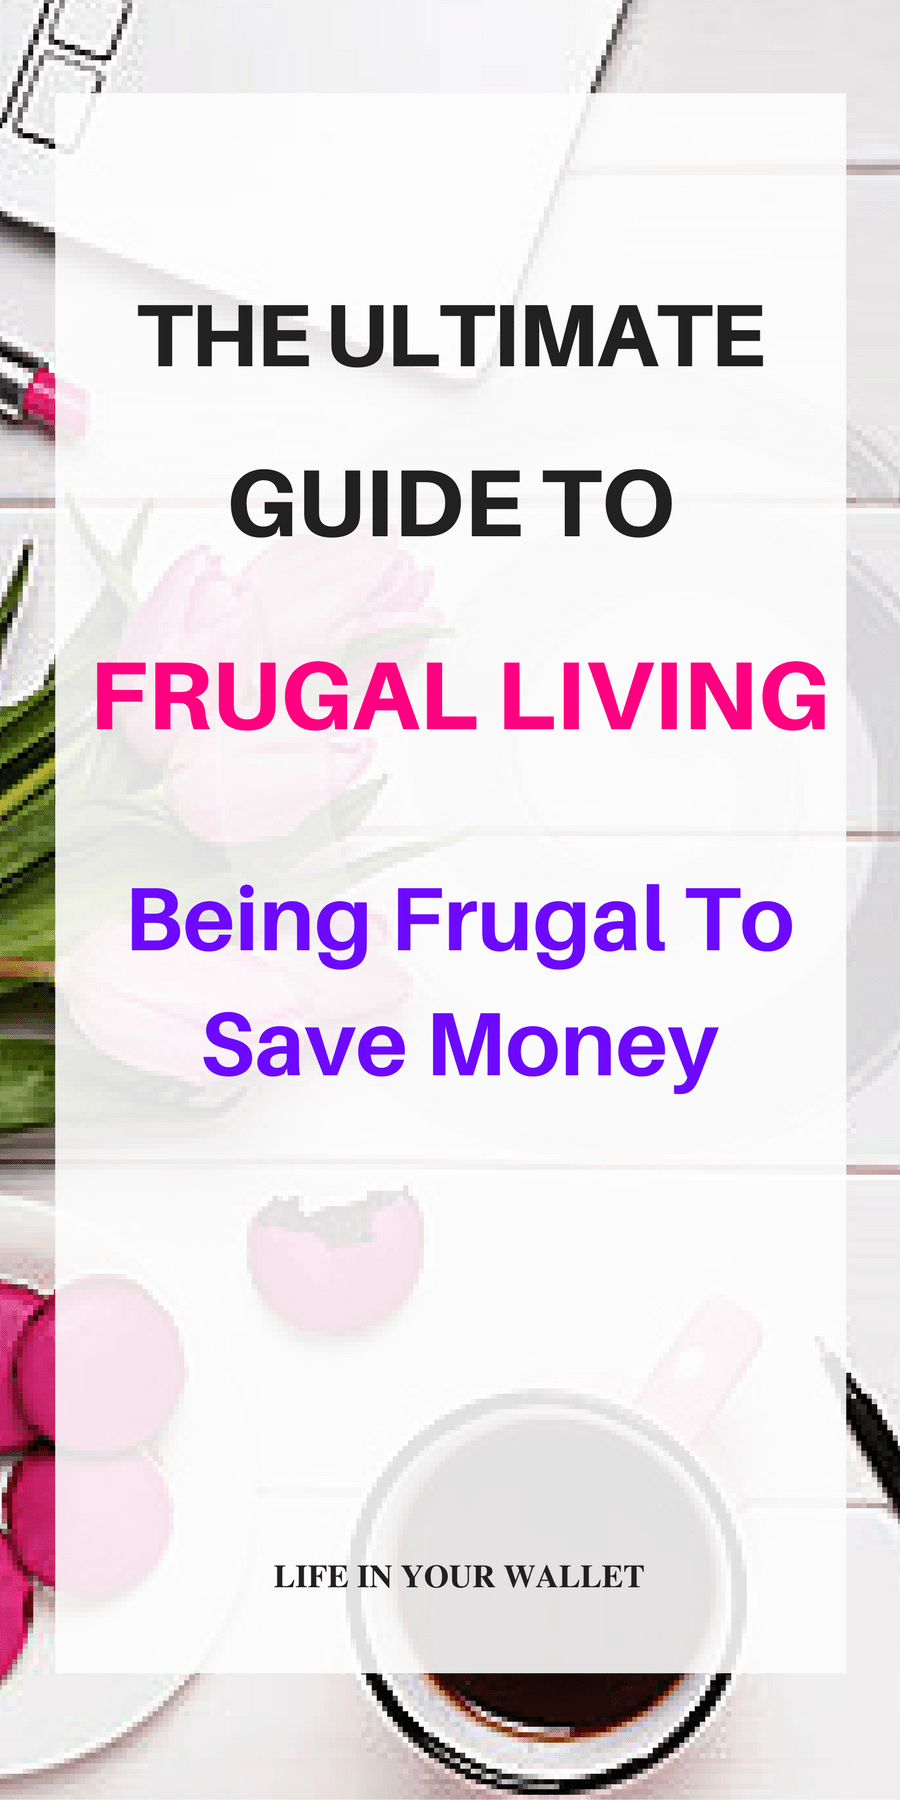 The frugal living guide array the ultimate guide to frugal living a frugality lifestyle guide for rh pinterest co fandeluxe Choice Image